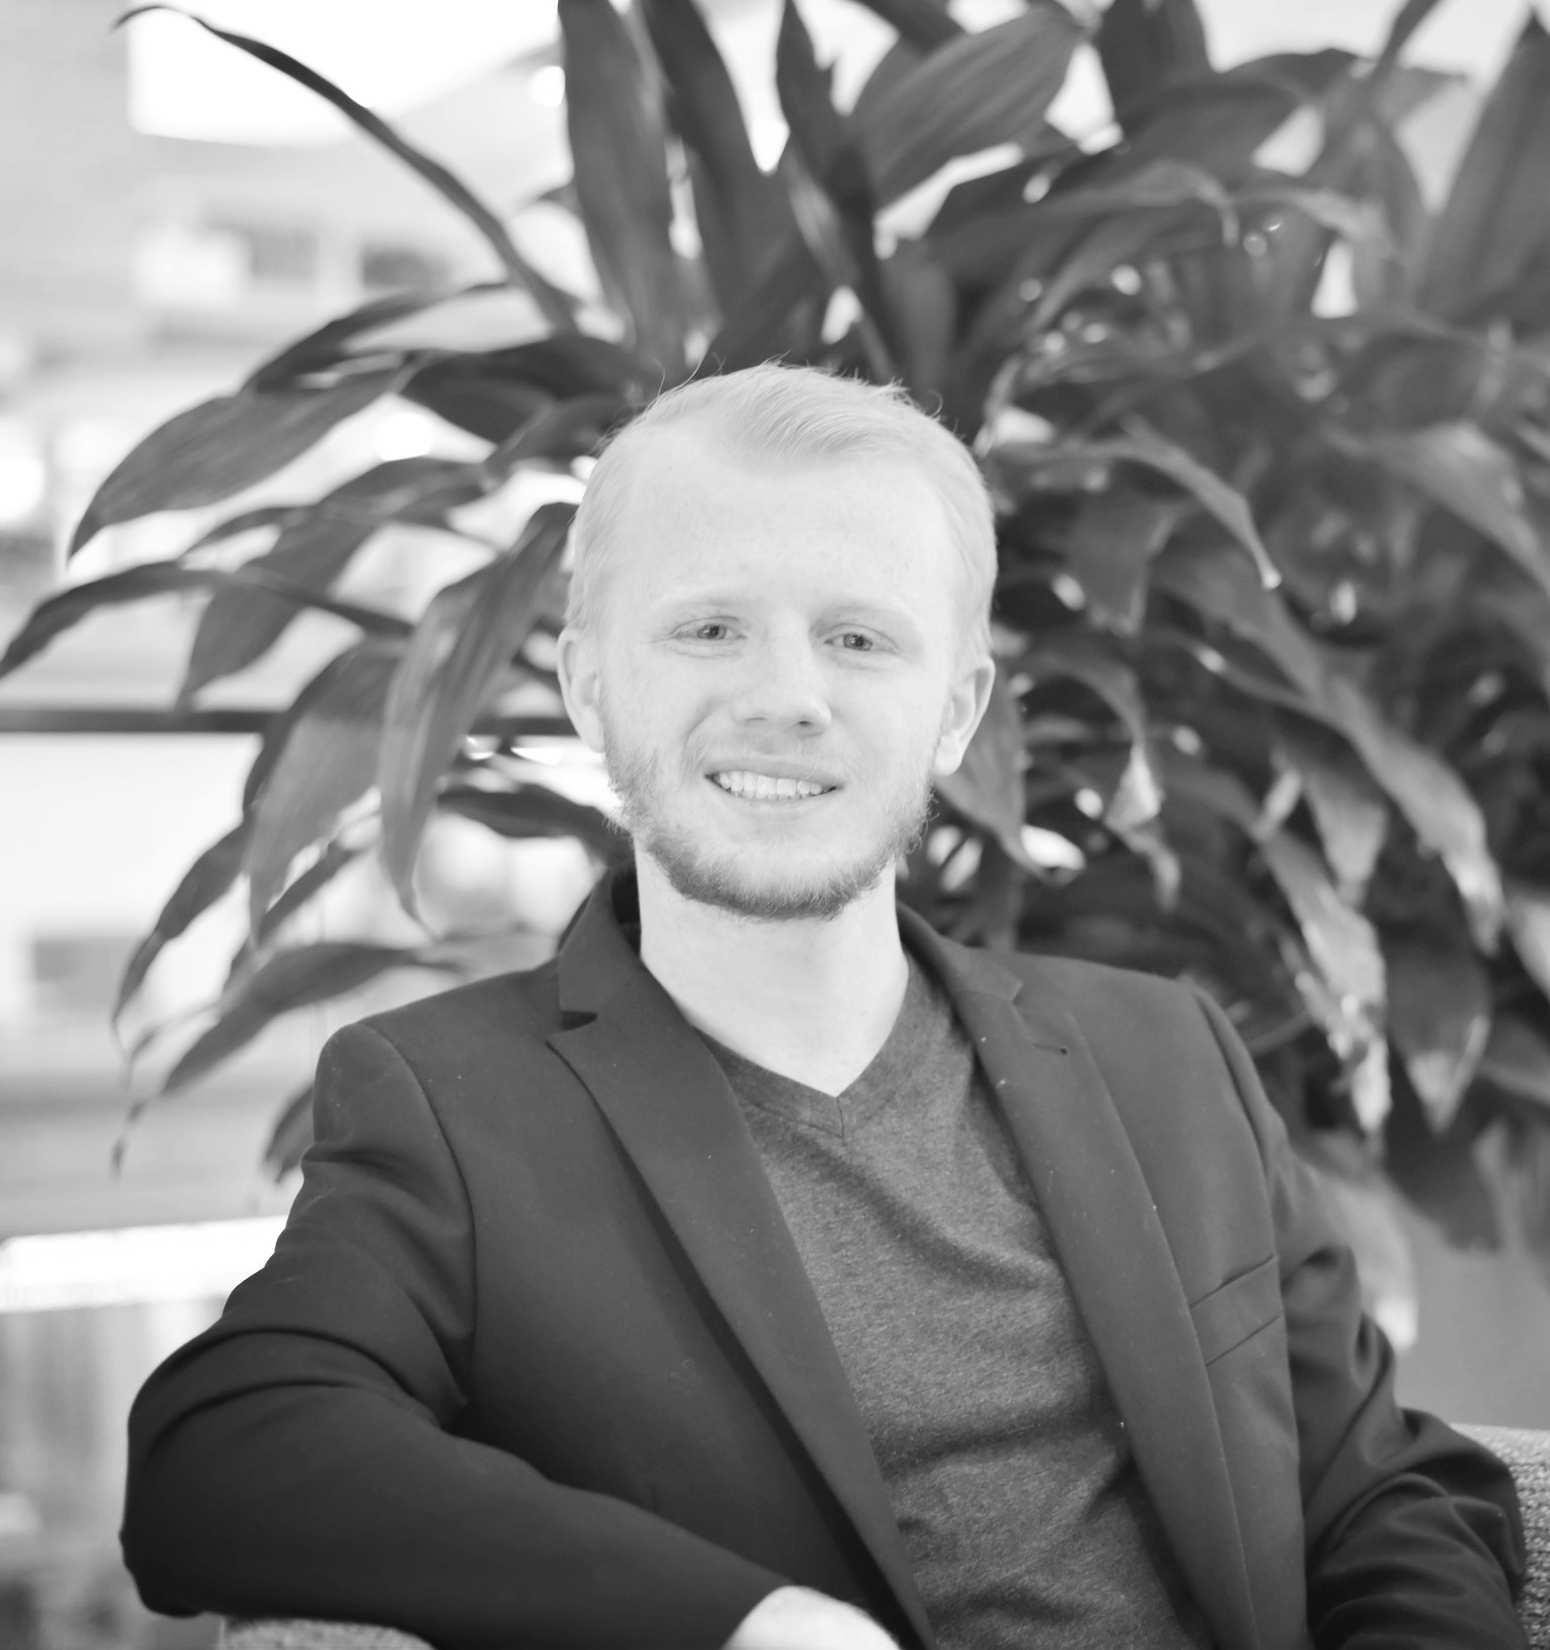 JR Diehl is the Operations Manager and Lead Developer at Houseplant Games. He comes from Austin, Texas, and founded HPG because he has enjoyed games his whole life and is excited to have the chance to help bring these games into being. -